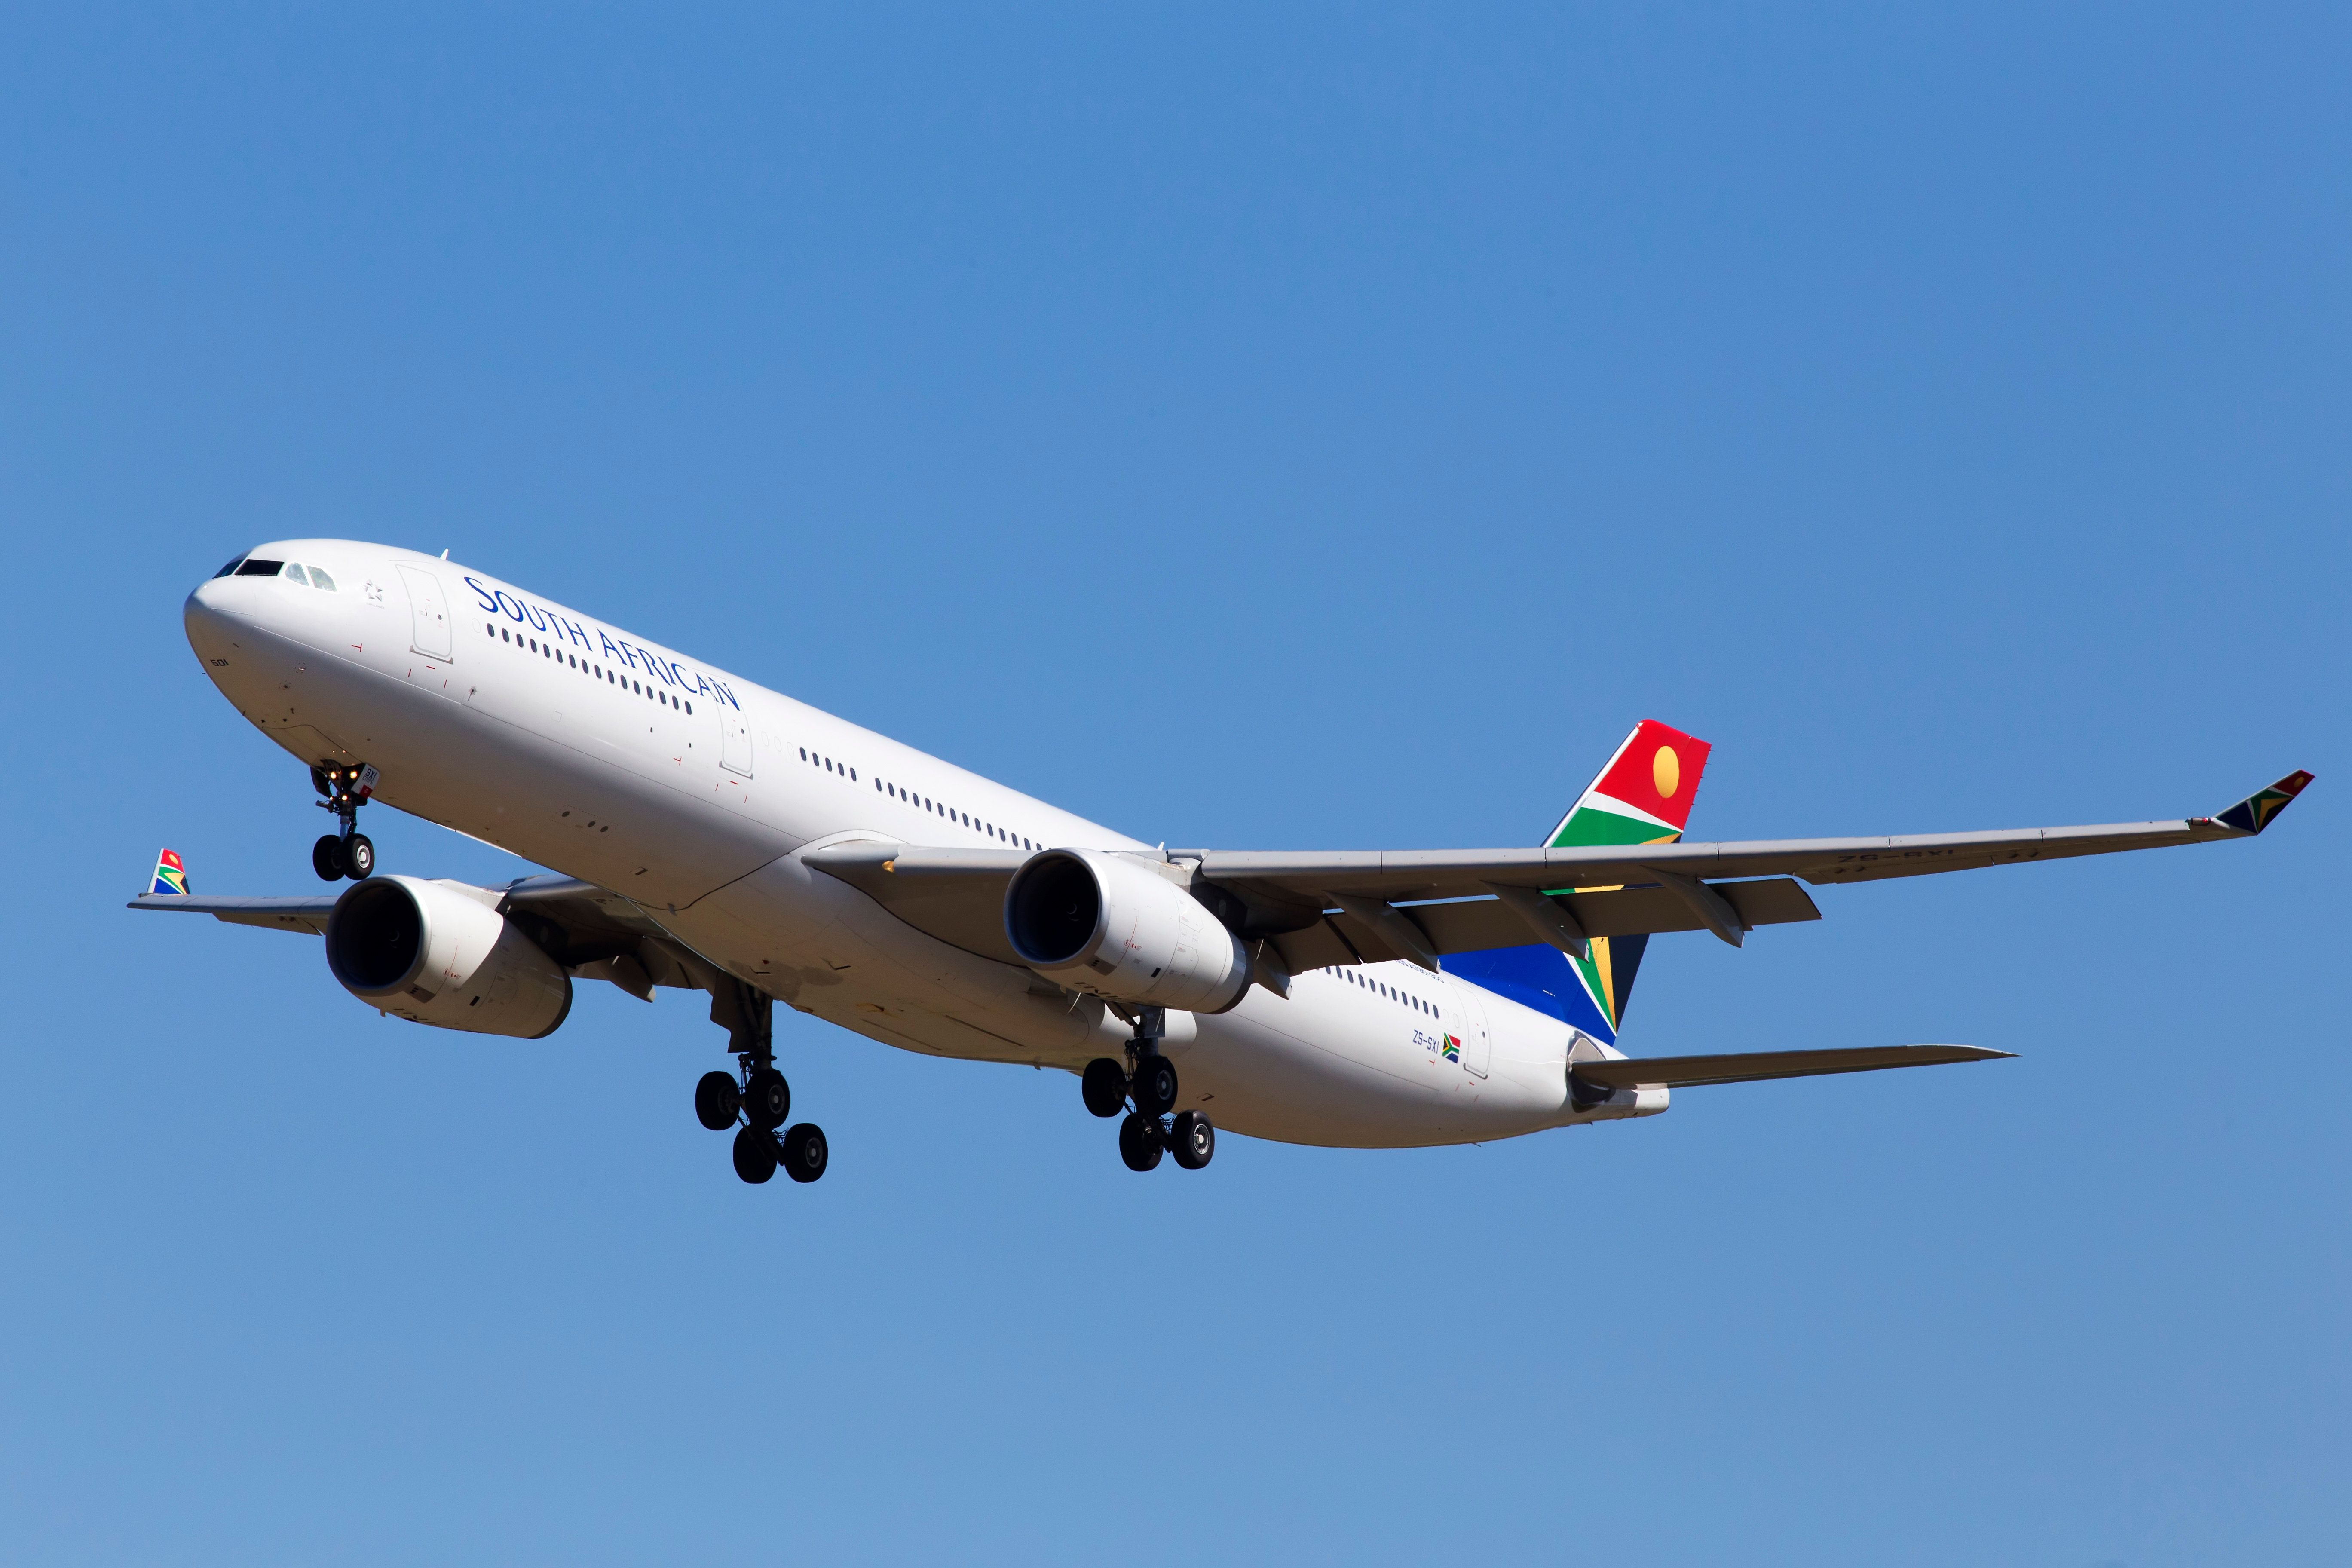 It's not the first time that passengers on board South Africa's national carrier have been targeted by thiev